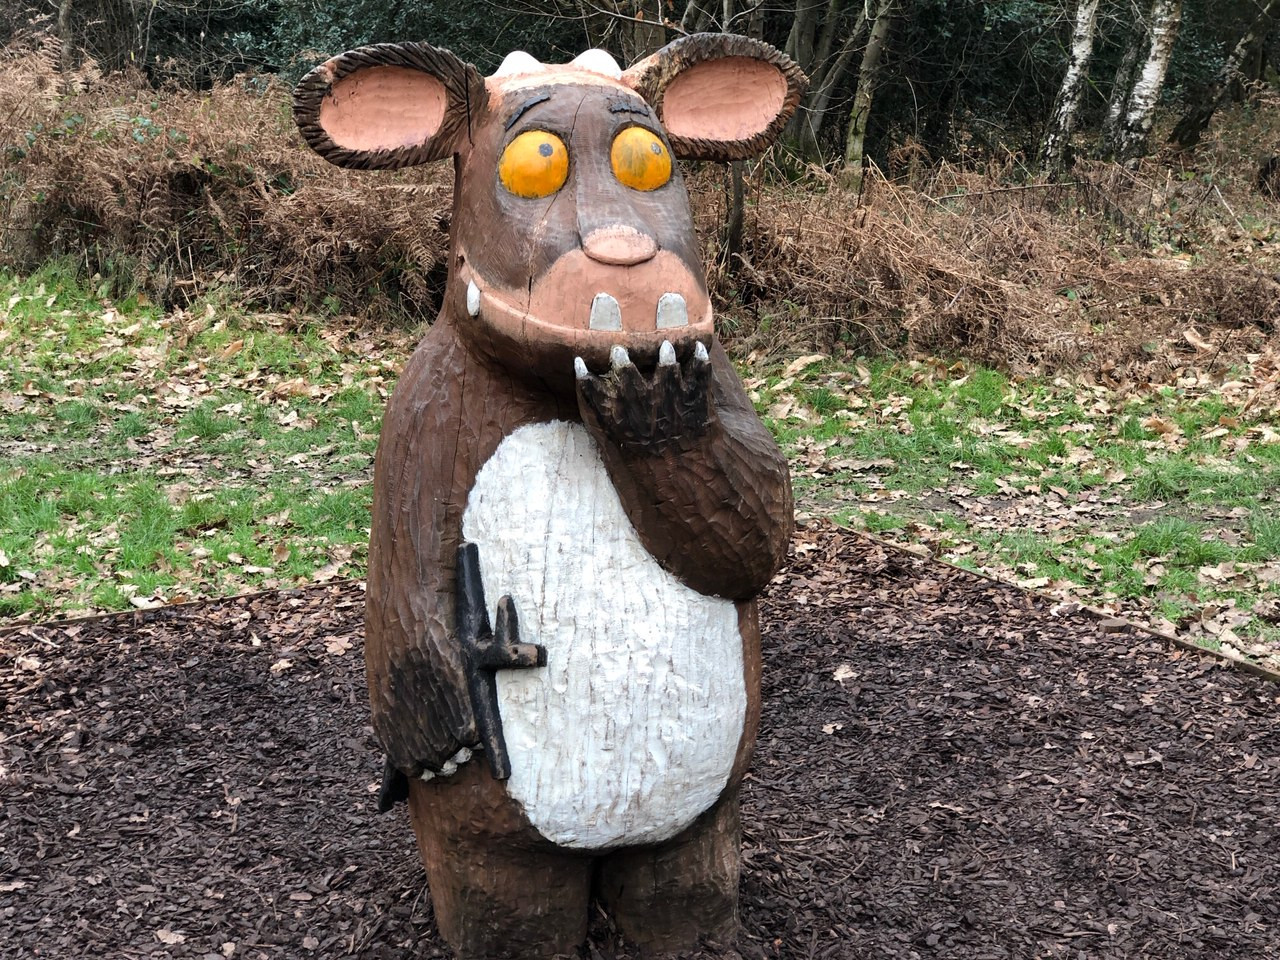 Sculpture of The Gruffalo's Child, Alice Holt Forest